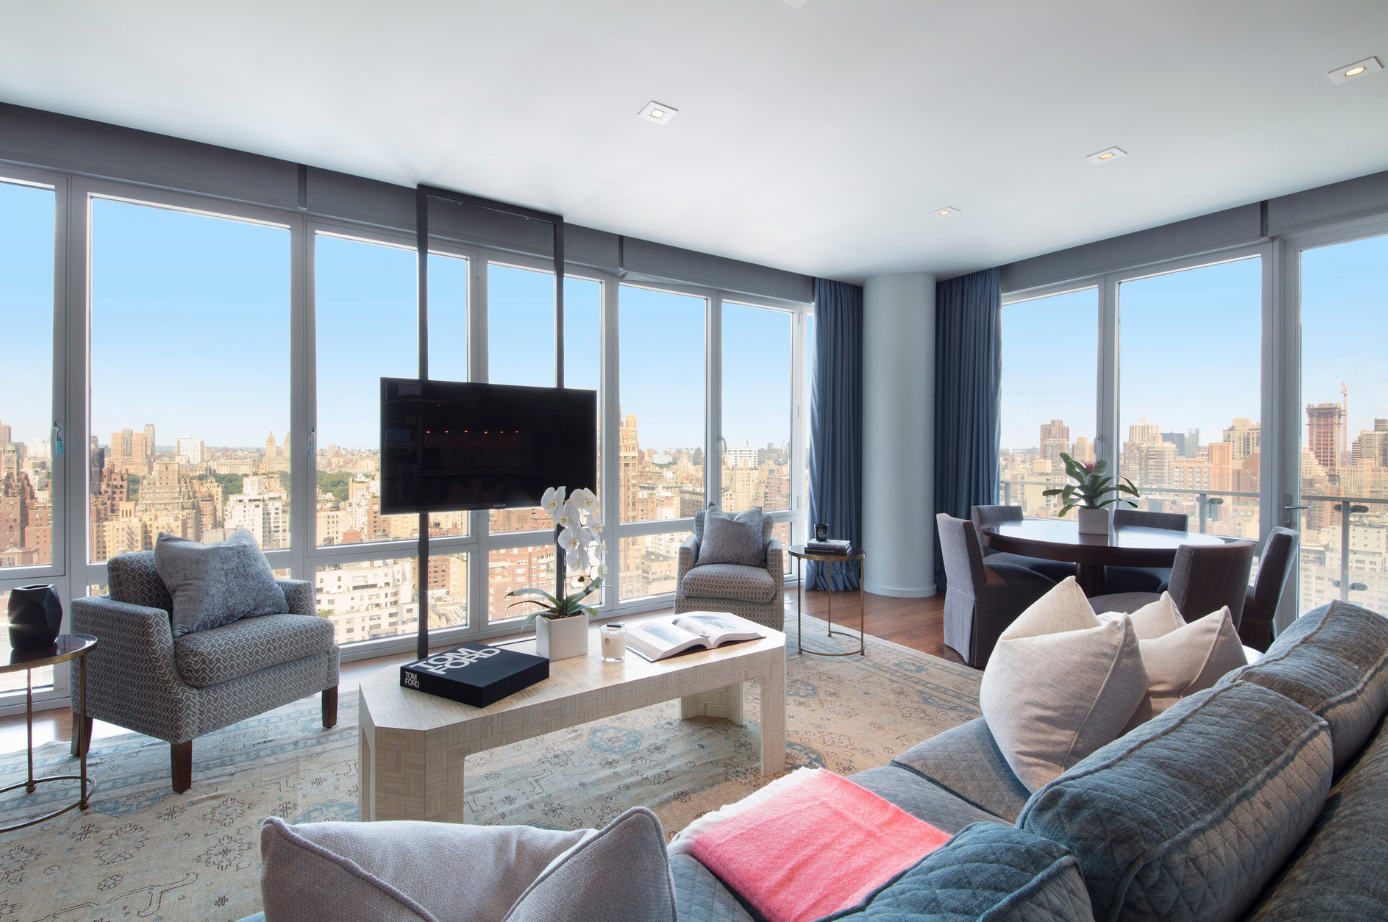 255 EAST 74TH STREET, 29B - $5,000,000 // 4 Beds // 3.5 Baths // 2,487 SQFT // 106 EXSFGraced with an array of sleek finishes and sublime city views, this 4-bedroom, 3.5-bathroom floor-through condo is an exemplar of contemporary UES luxury. Features of this 2,487 sq. ft. home include gorgeous hardwood floors in the living spaces, elegant carpeting in the bedrooms, huge floor-to-ceiling windows, northern, eastern, and western exposure, soaring 10-ft ceilings, innovative TV window mounts, a convenient in-unit washer/dryer, a [wood/gas]-burning fireplace, a spacious balcony with views that stretch from Queens and the East River to the treetops of Central Park and beyond.